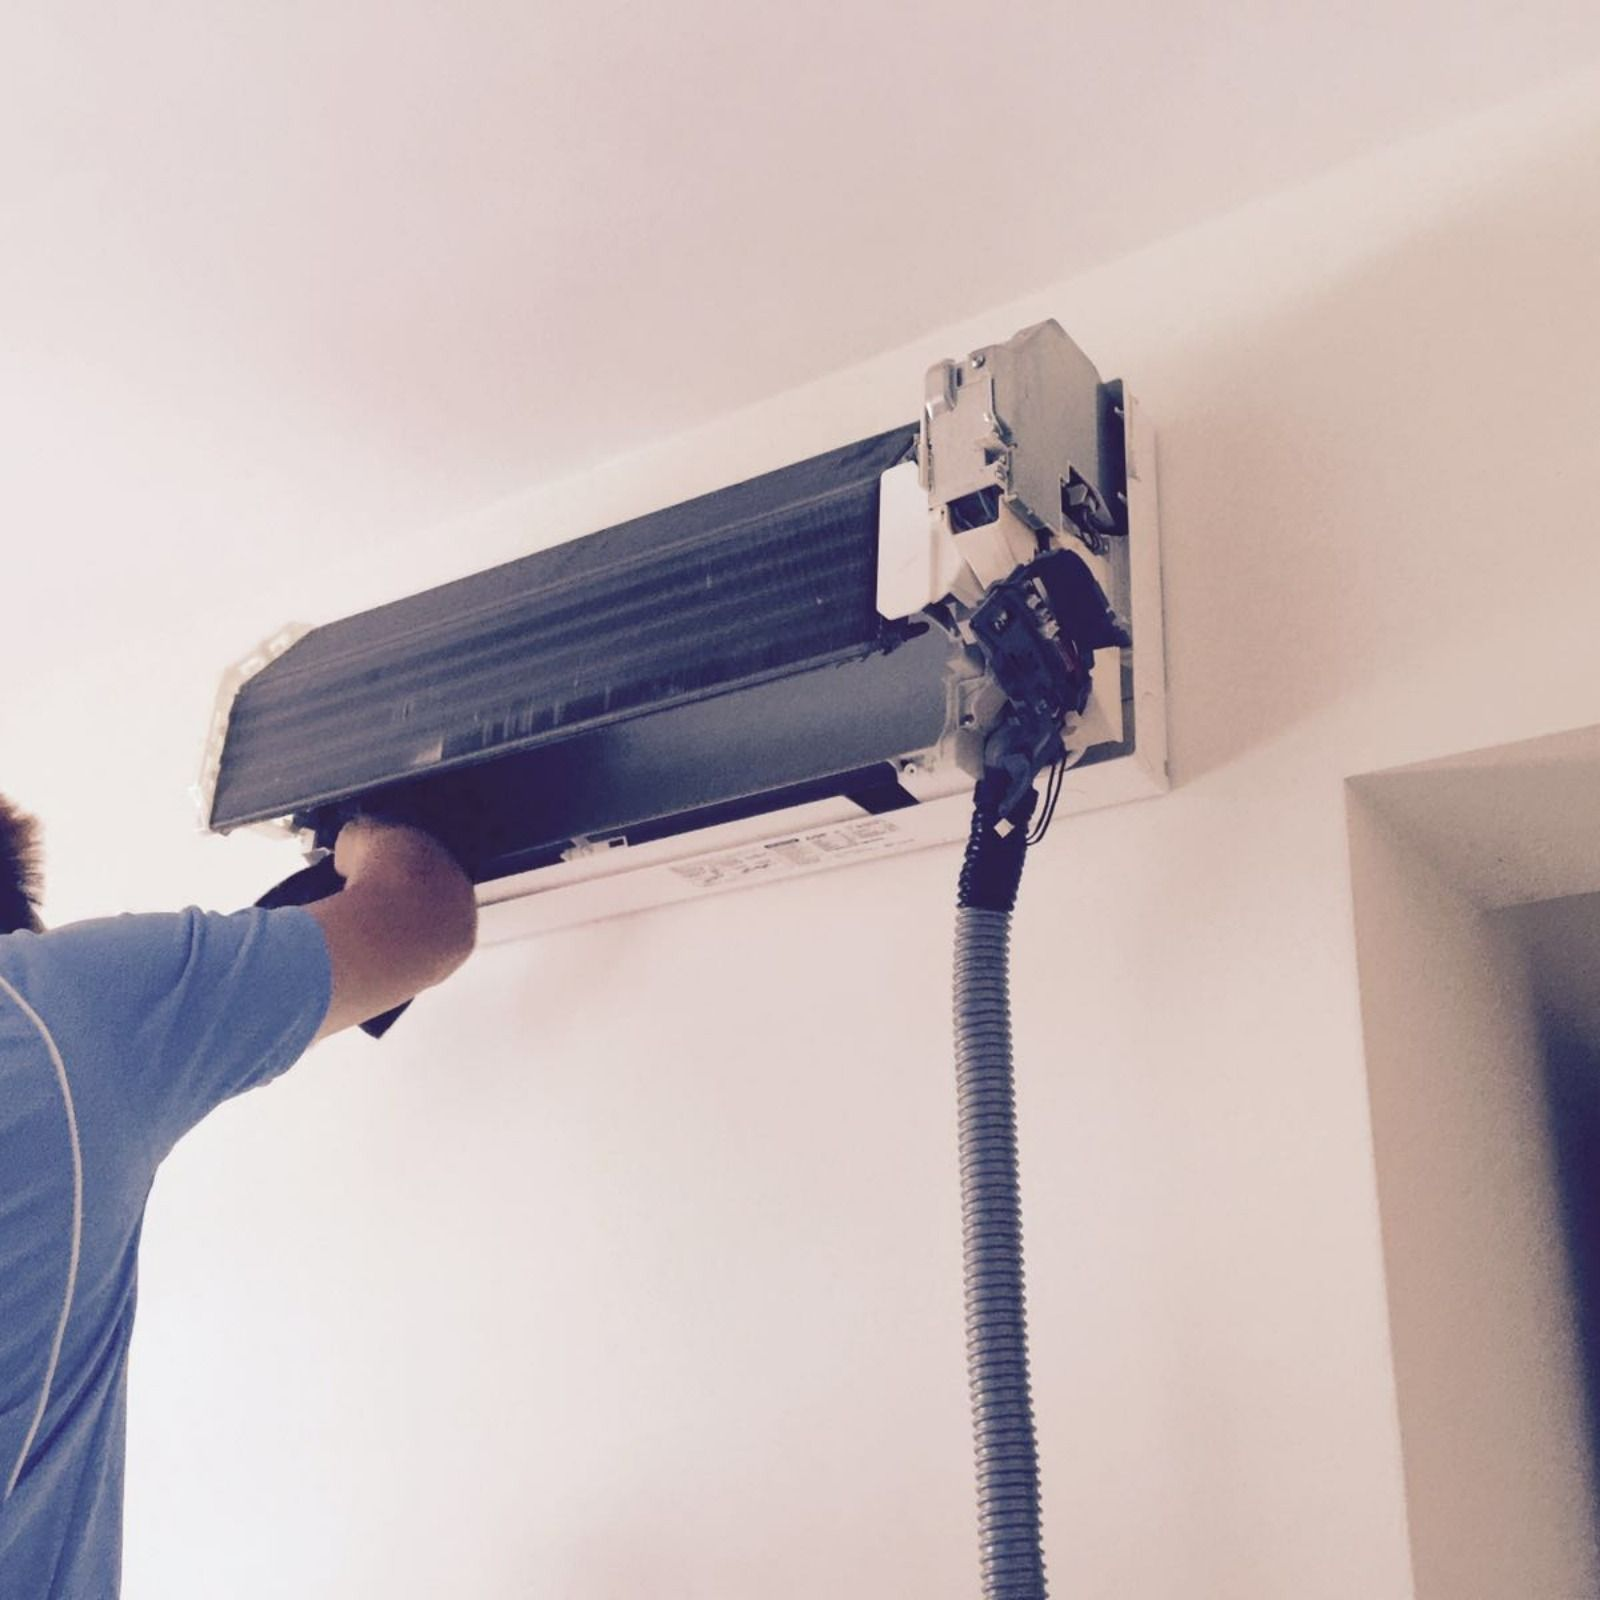 Air Conditioning Service Air Conditioning Services Aircon